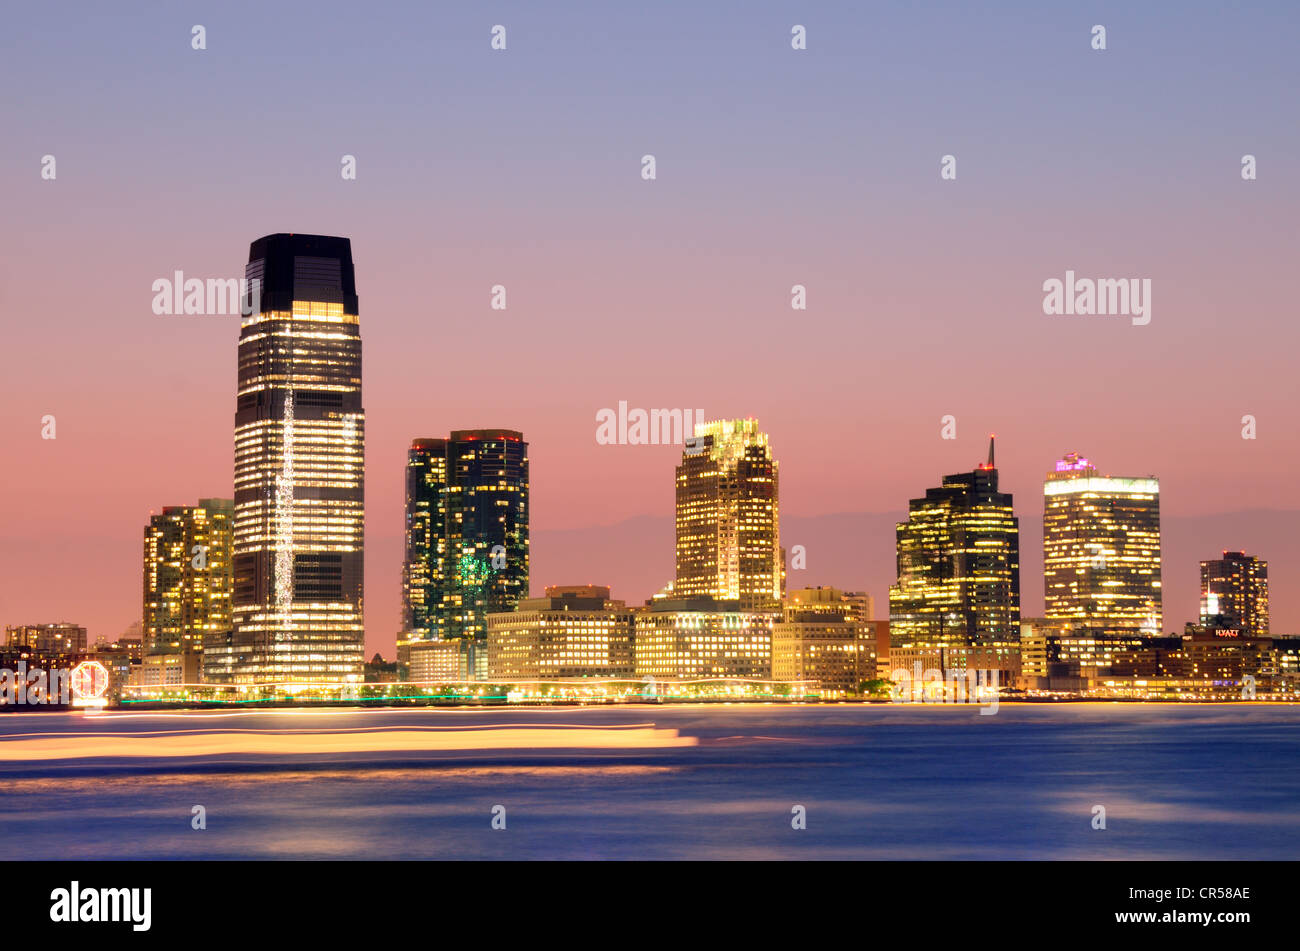 Exchange Place in Jersey City, New Jersey, USA. - Stock Image